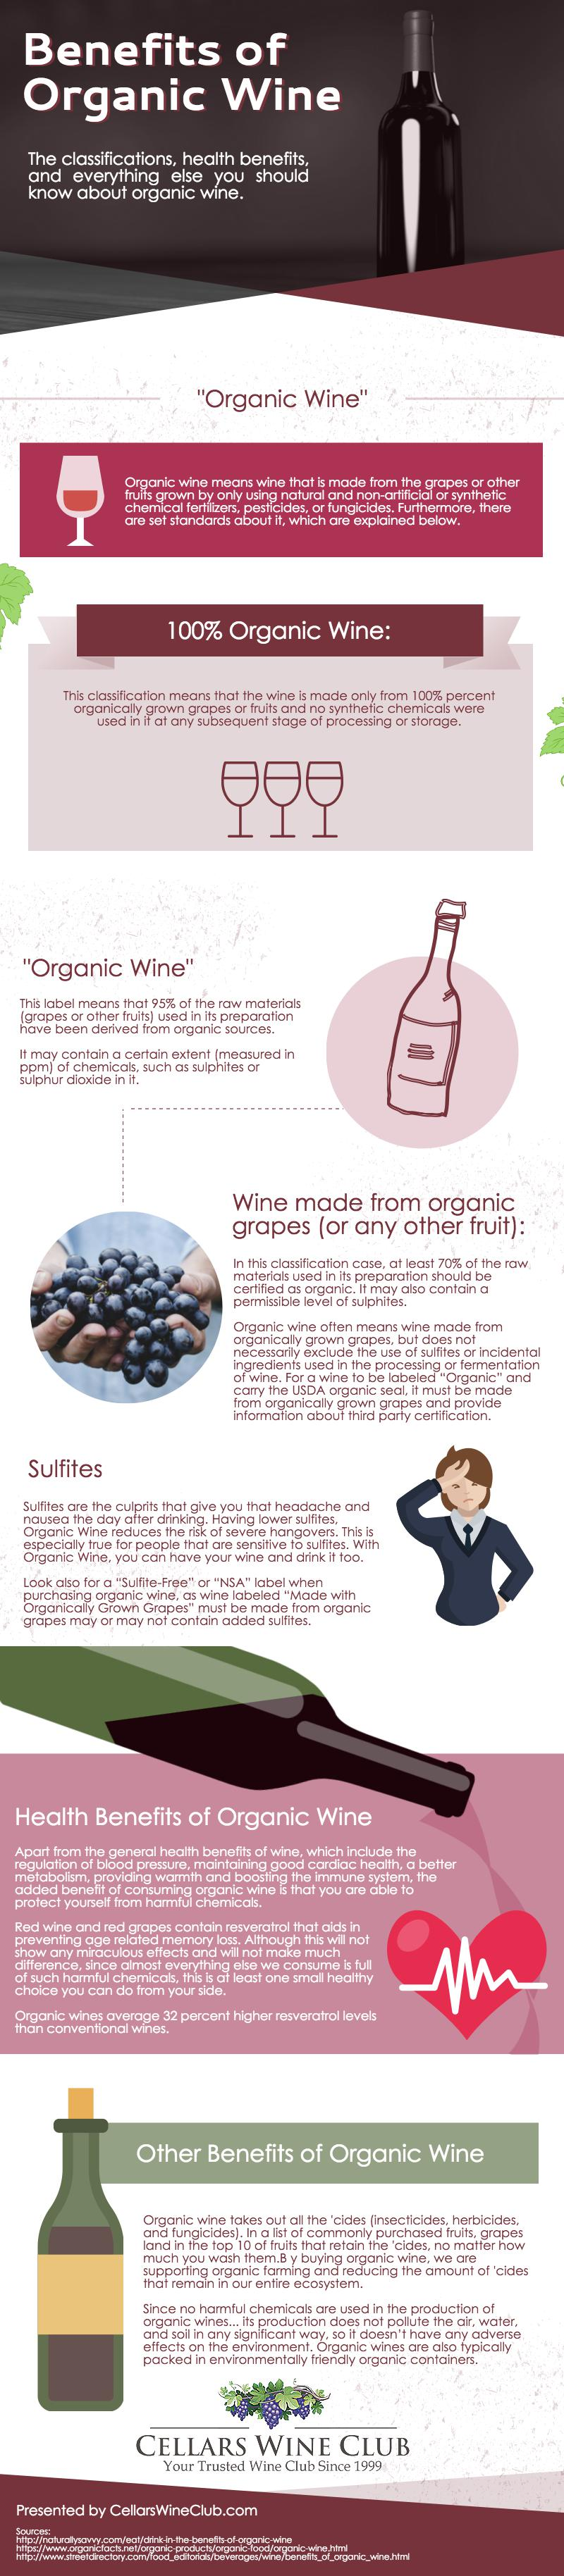 Benefits of Organic Wine